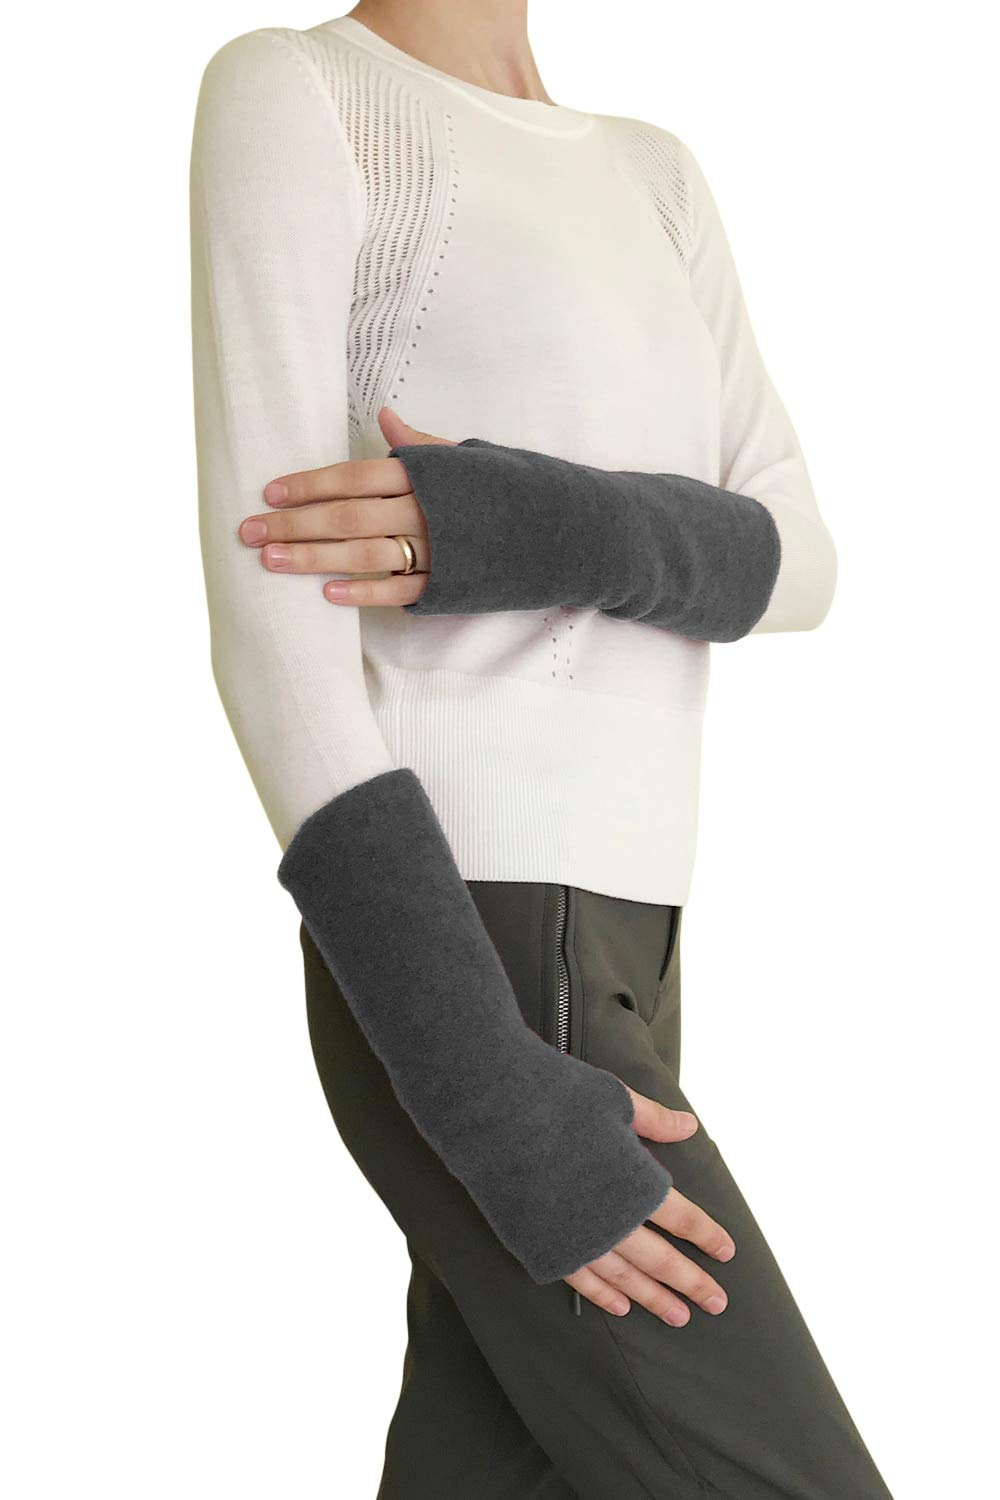 Women's Arm Warmer Sleeves - Fingerless Gloves with Thumb Holes, Pure Merino Wool Fleece (Grey Melange) by EcoAble Apparel (Image #2)